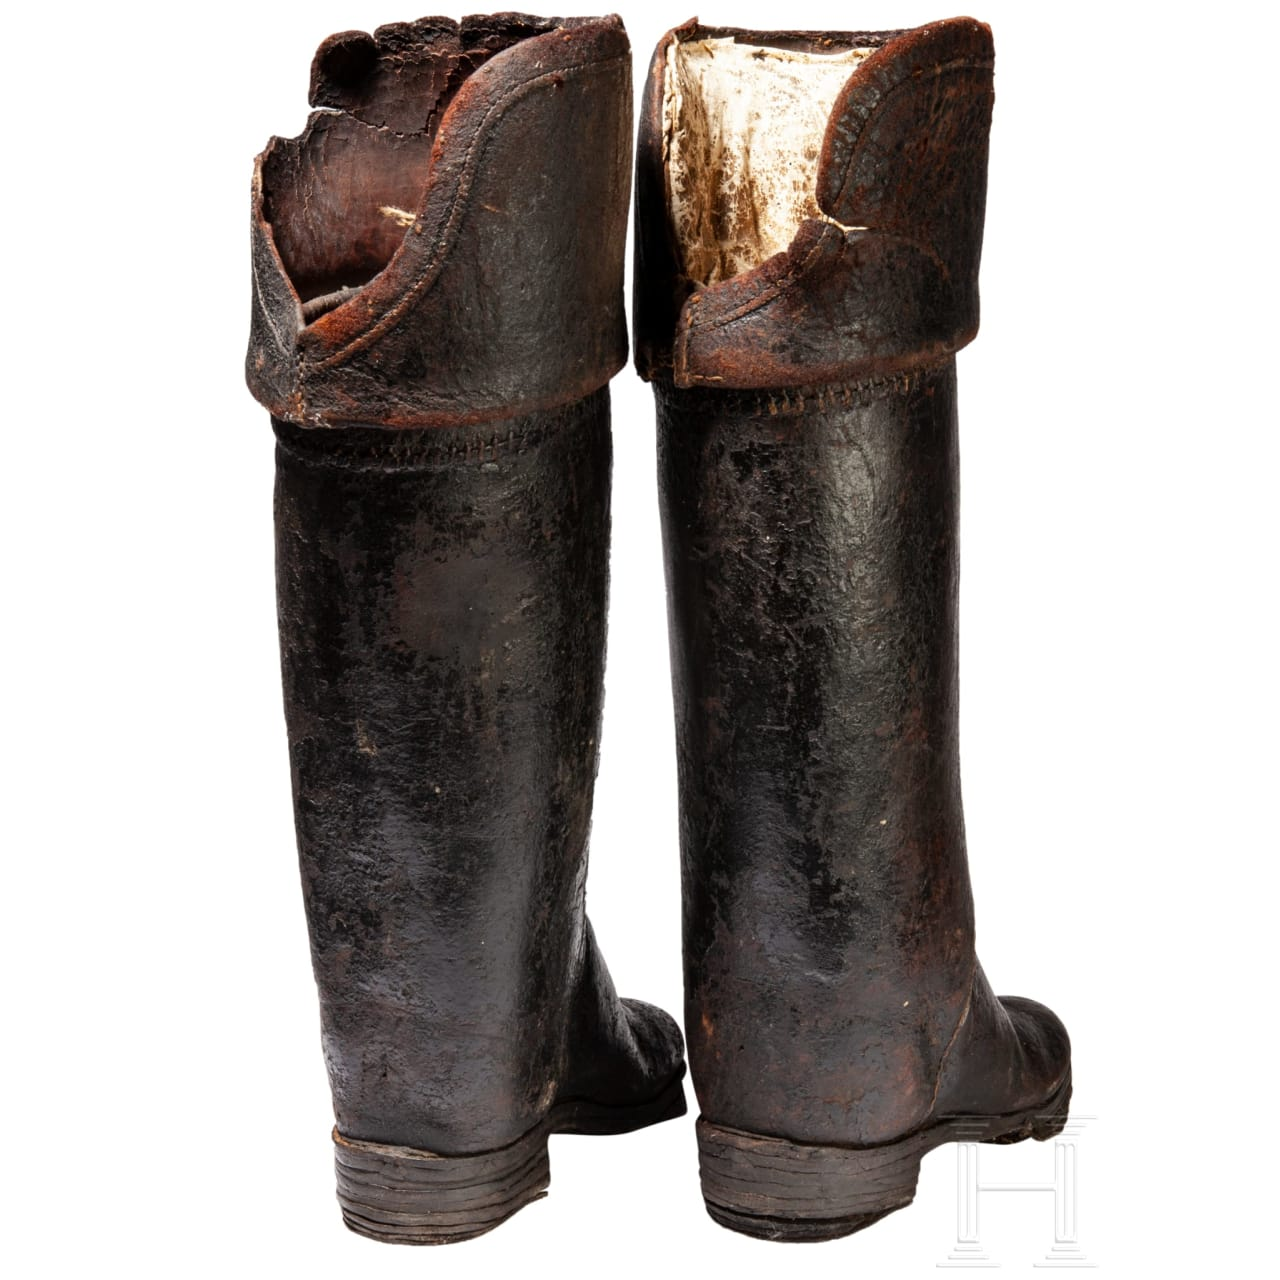 A pair of German or French cuirassier's boots, early 18th century